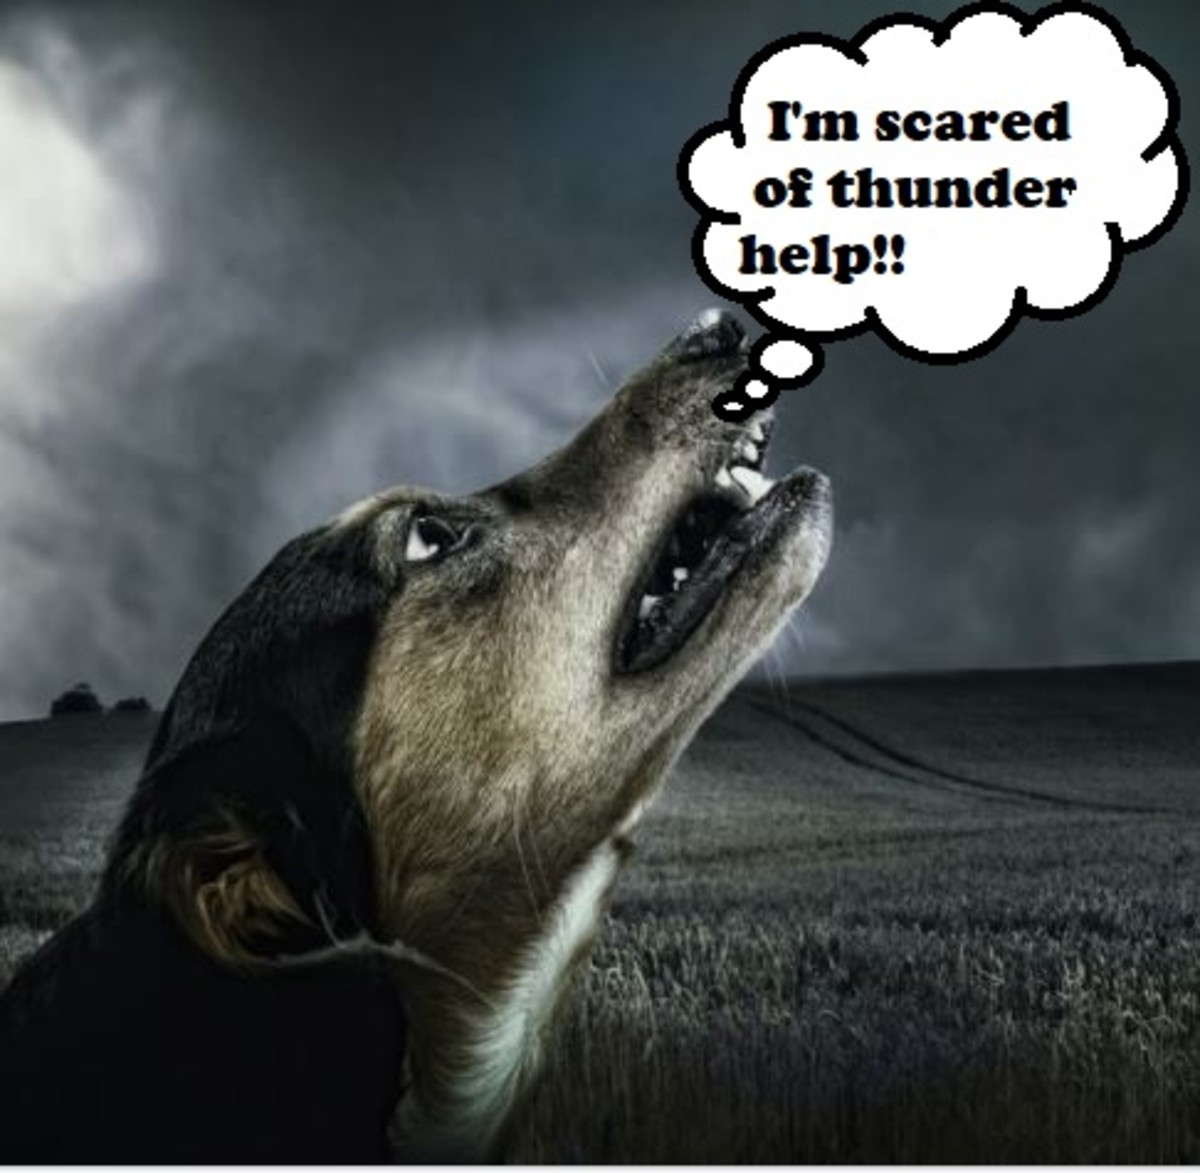 An aversive stimulus triggers fear in dogs. Conditioning causes changes in an organism's body in reaction to stimuli.